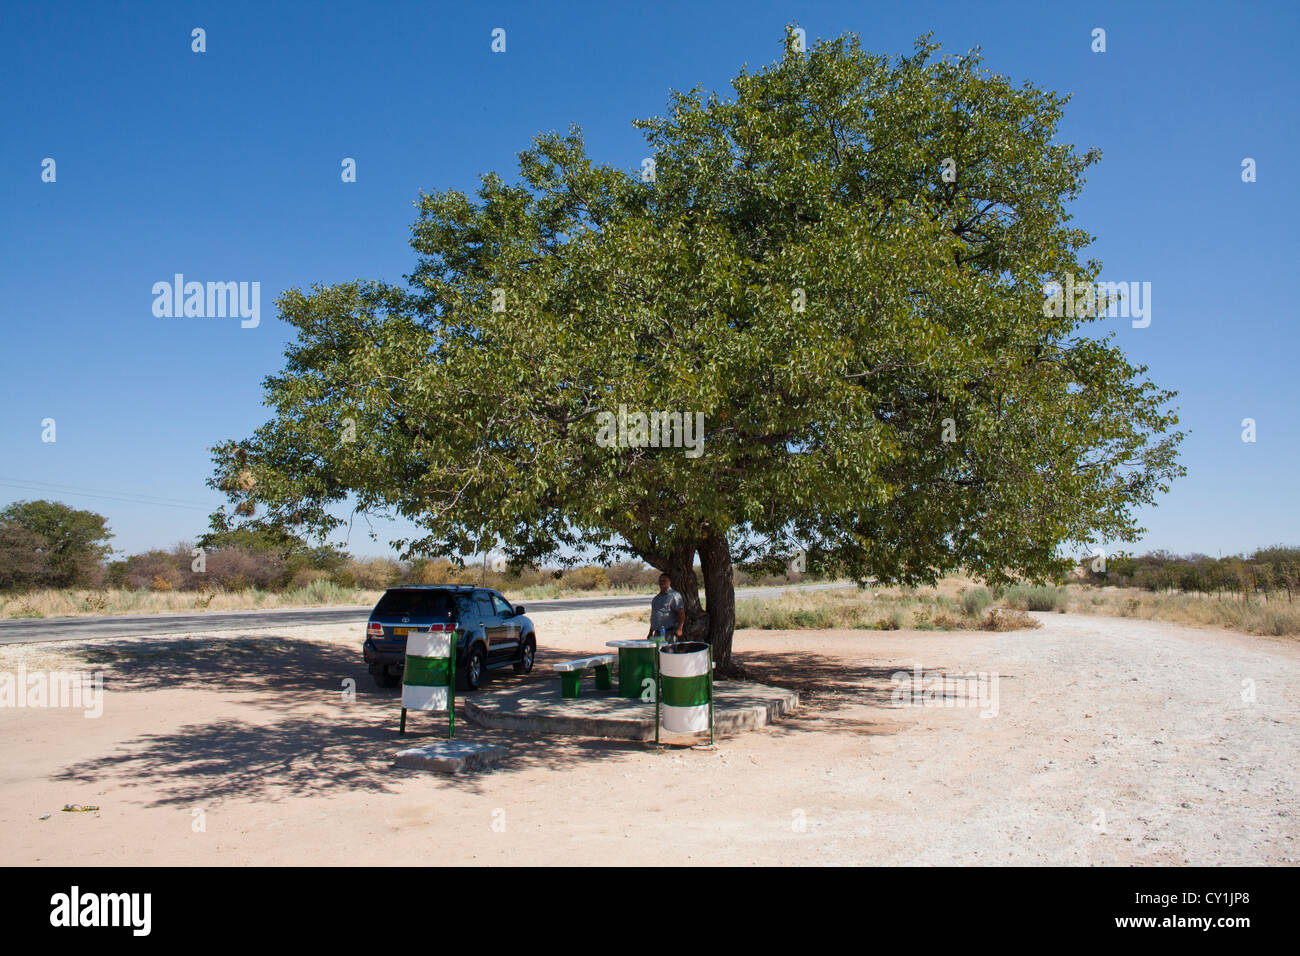 resting place north of windhoek - Stock Image